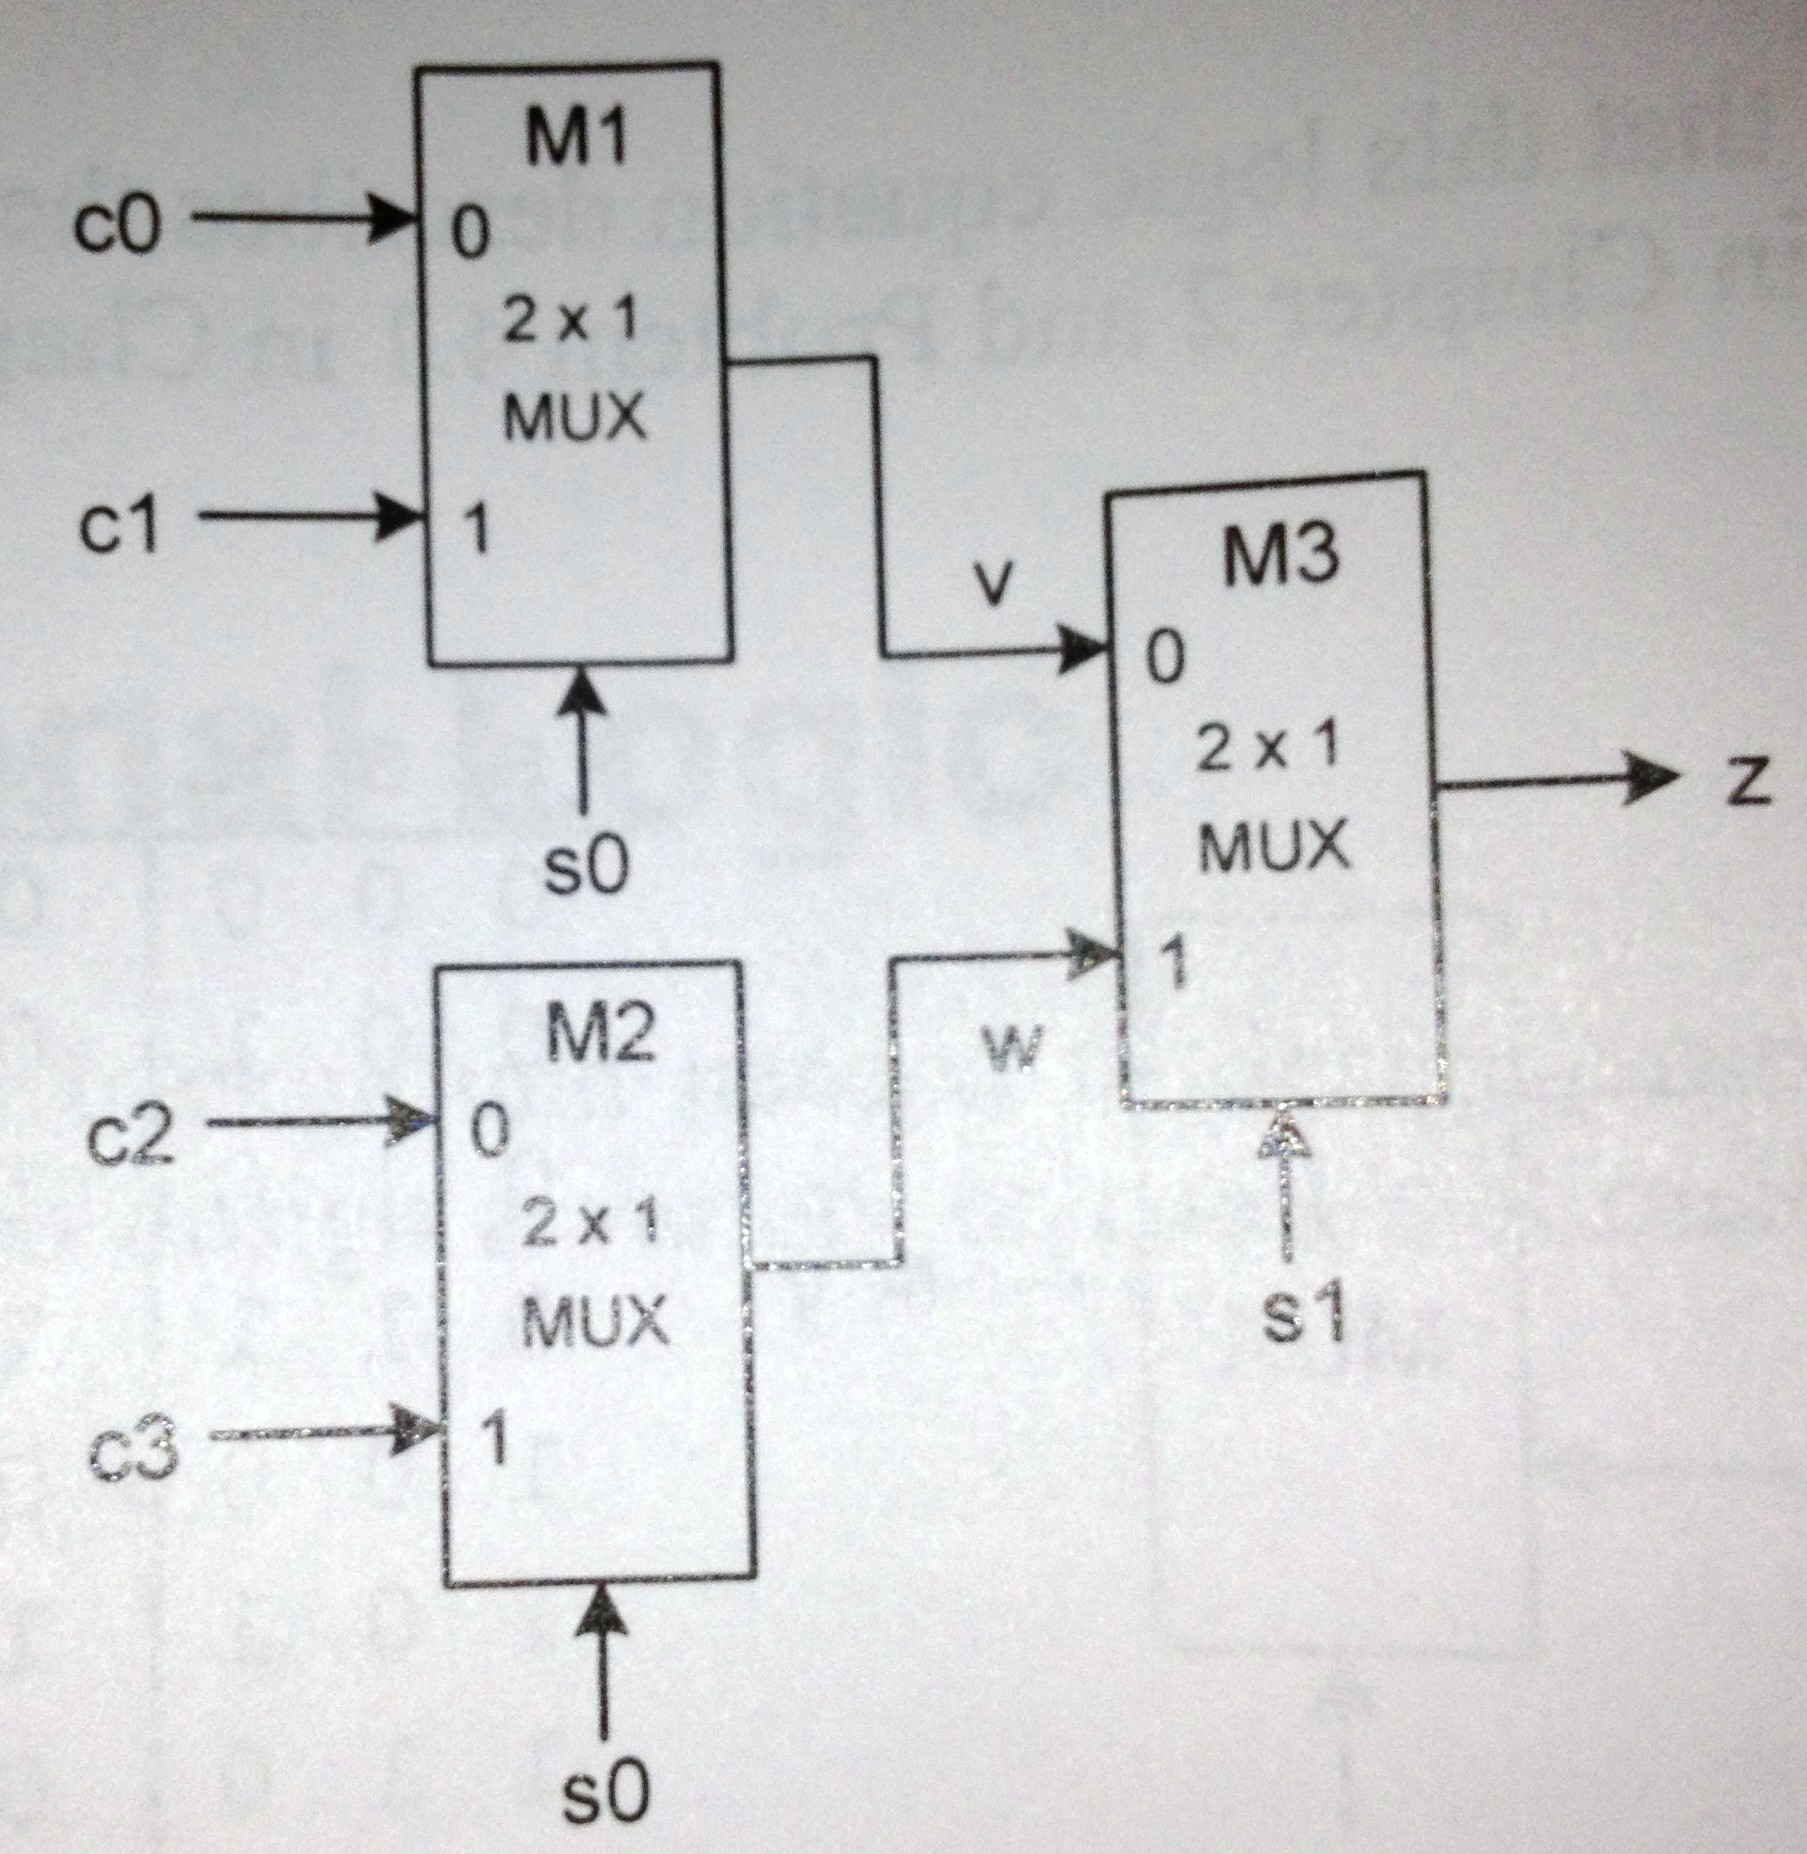 logic diagram of 8 to 1 line multiplexer vw touareg pdc wiring chapter 5 combinational computer science courses